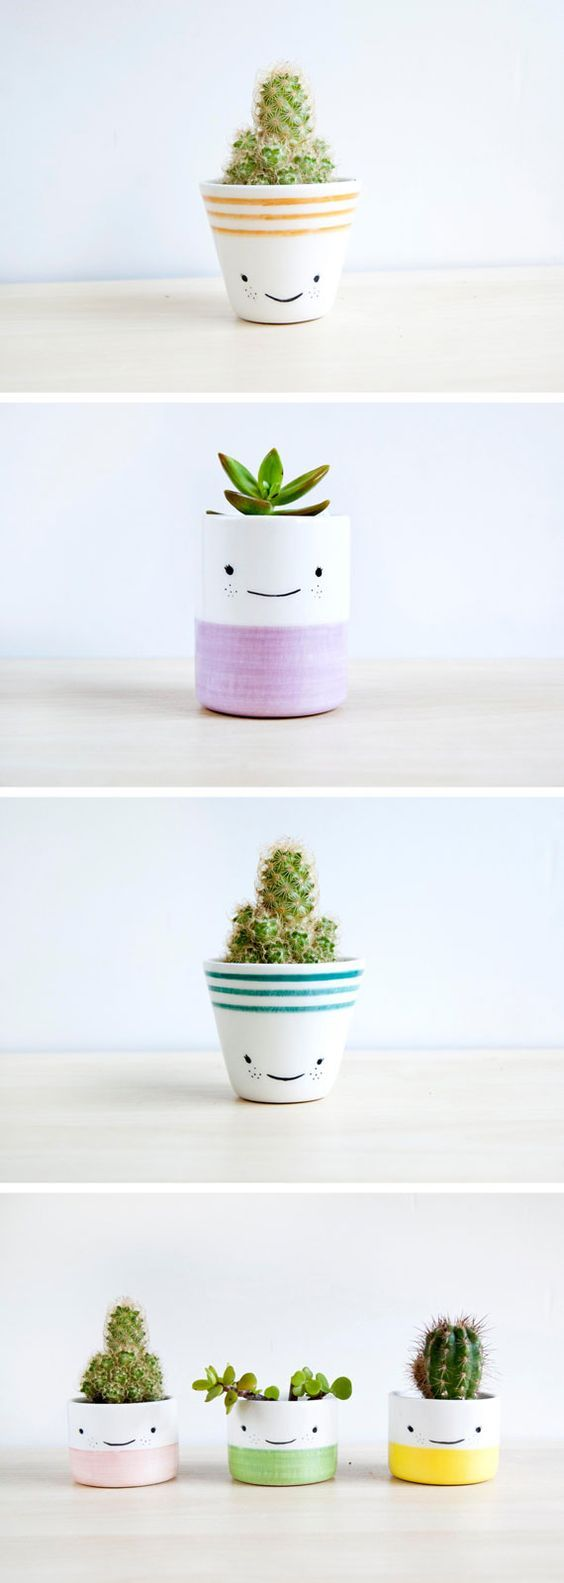 DIY happy face planters